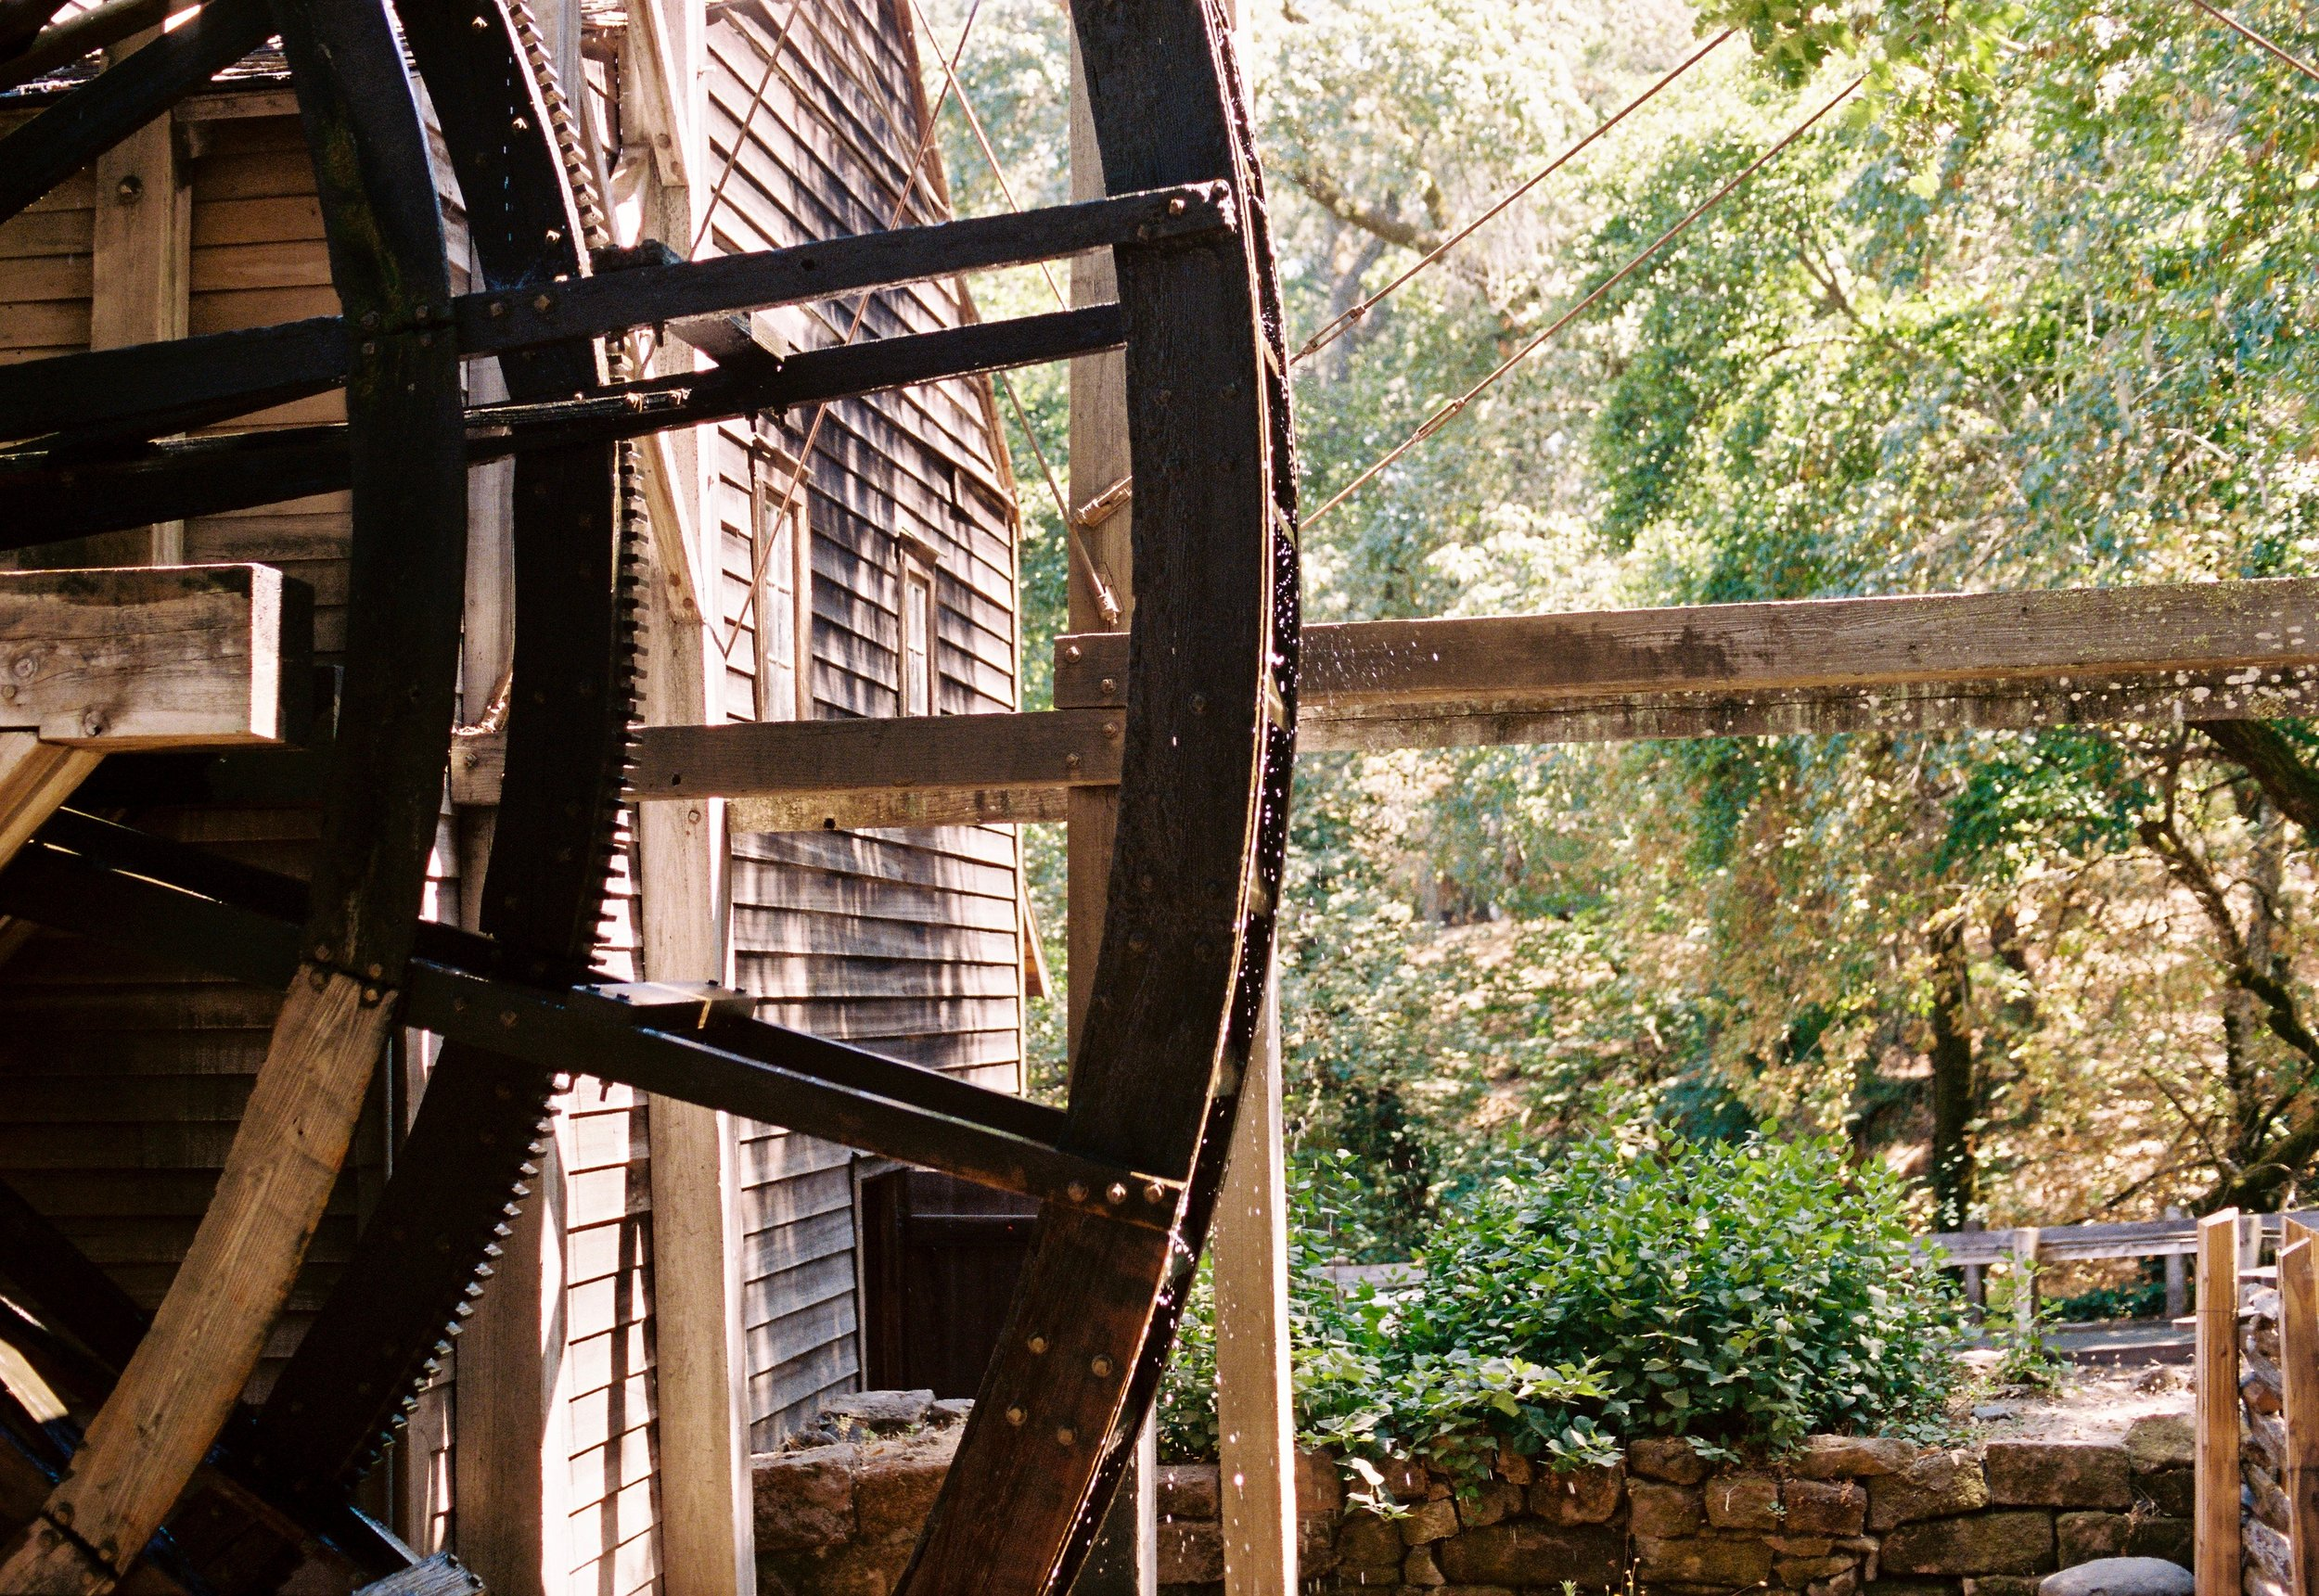 Another shot of the water wheel at Bale Grist Mill. The Mill is a historic site, but they grind every day!